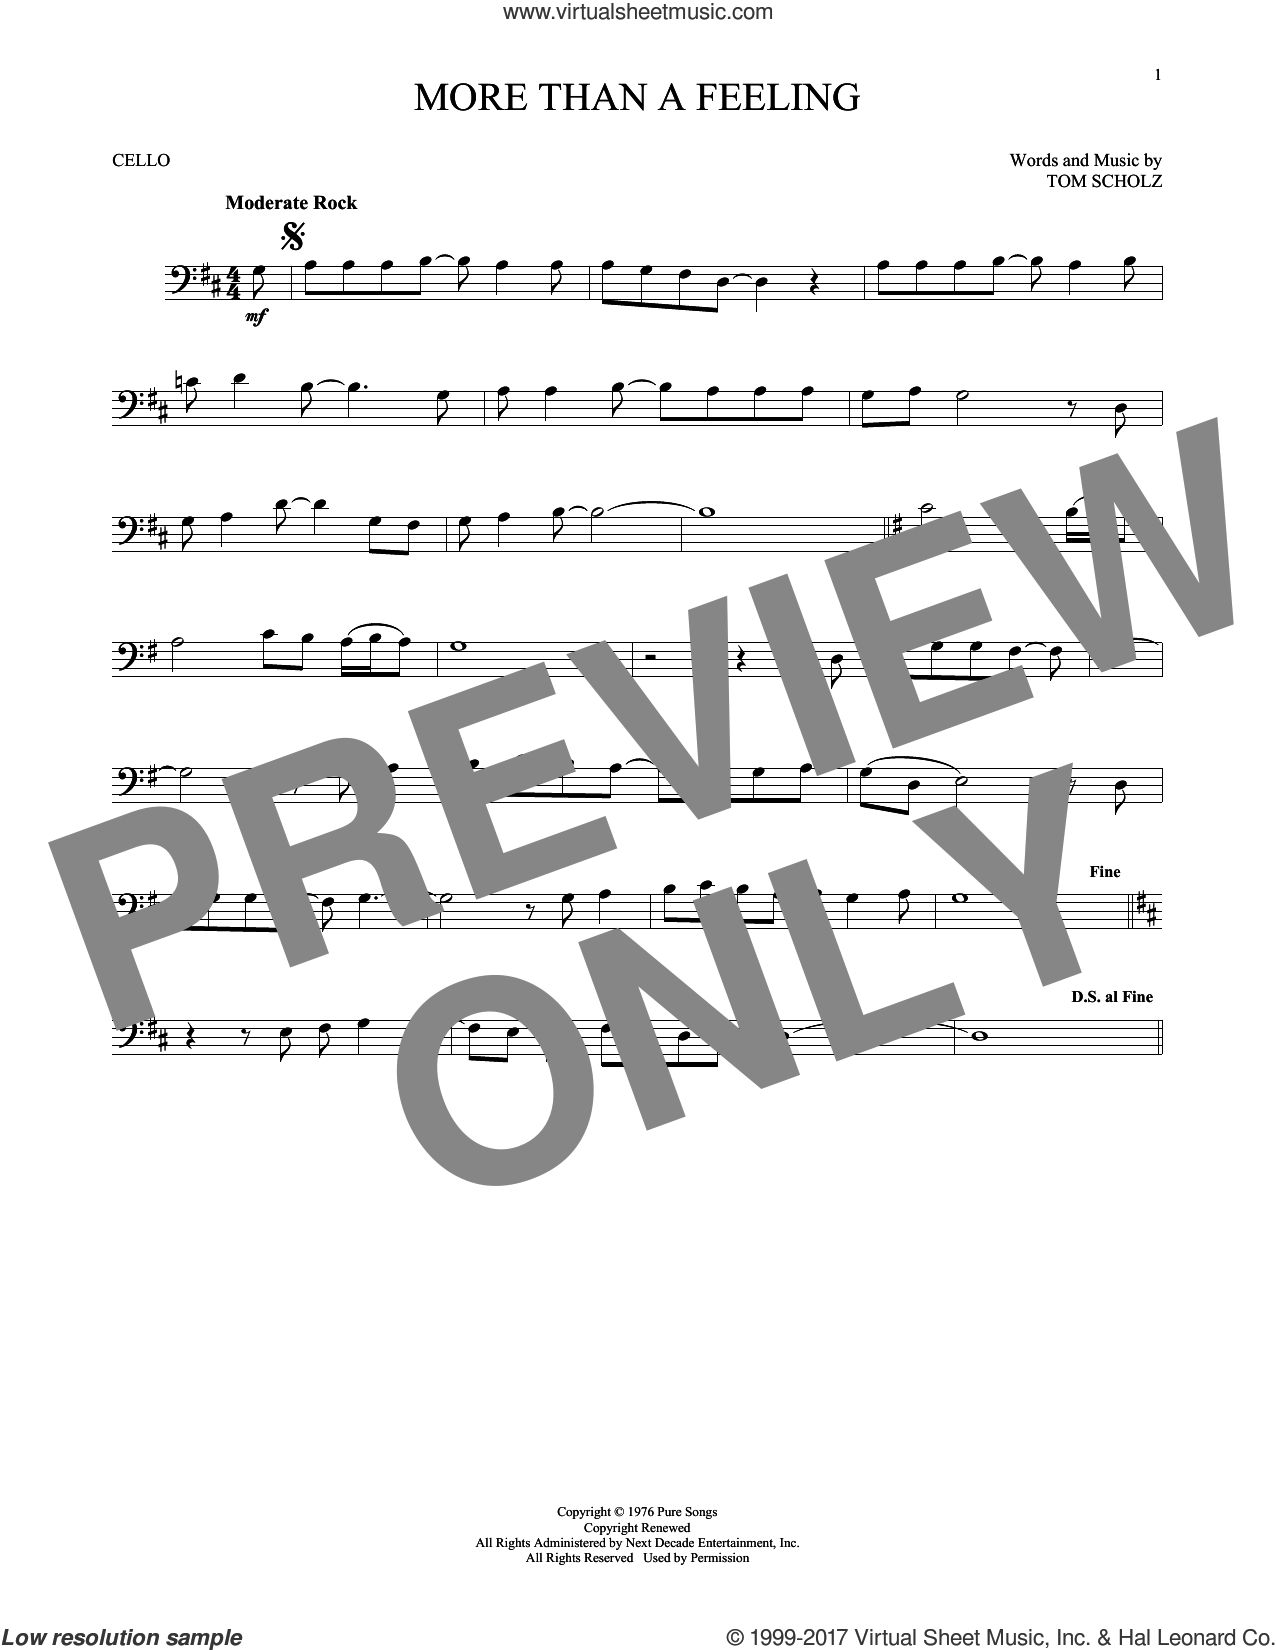 More Than A Feeling sheet music for cello solo by Boston and Tom Scholz, intermediate skill level